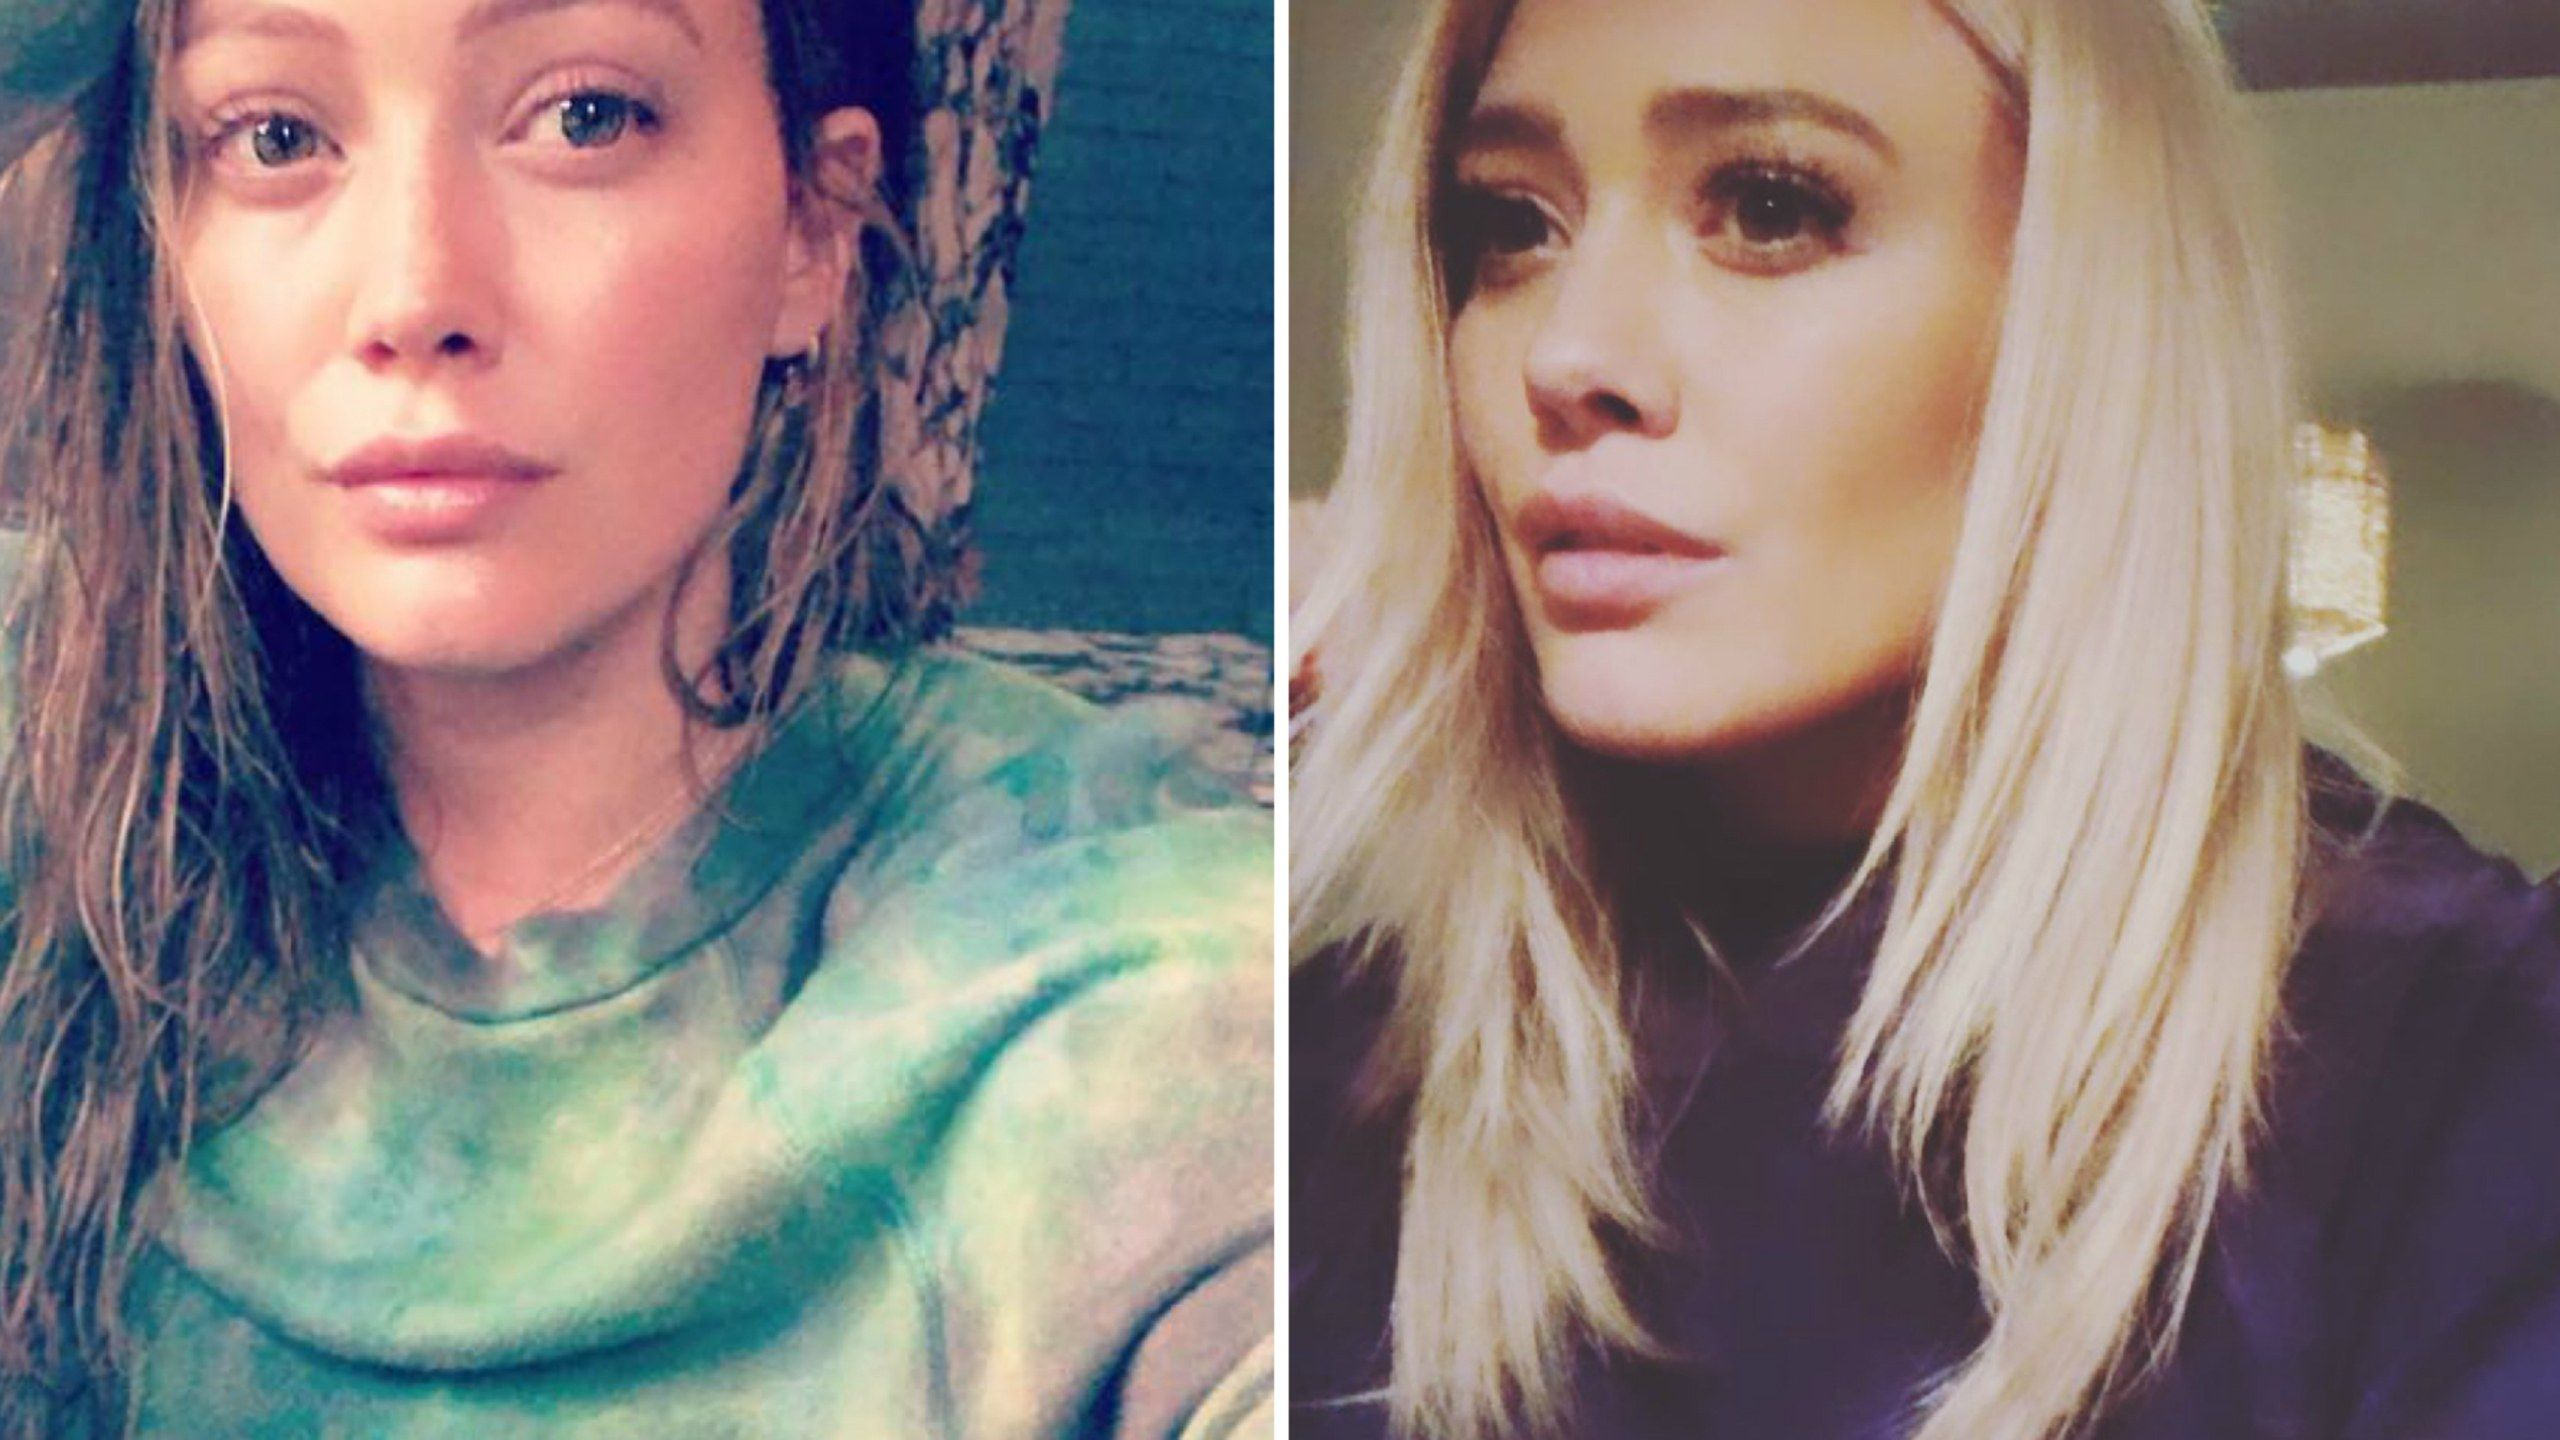 Hilary duff just dyed her hair the perfect icy shade of platinum